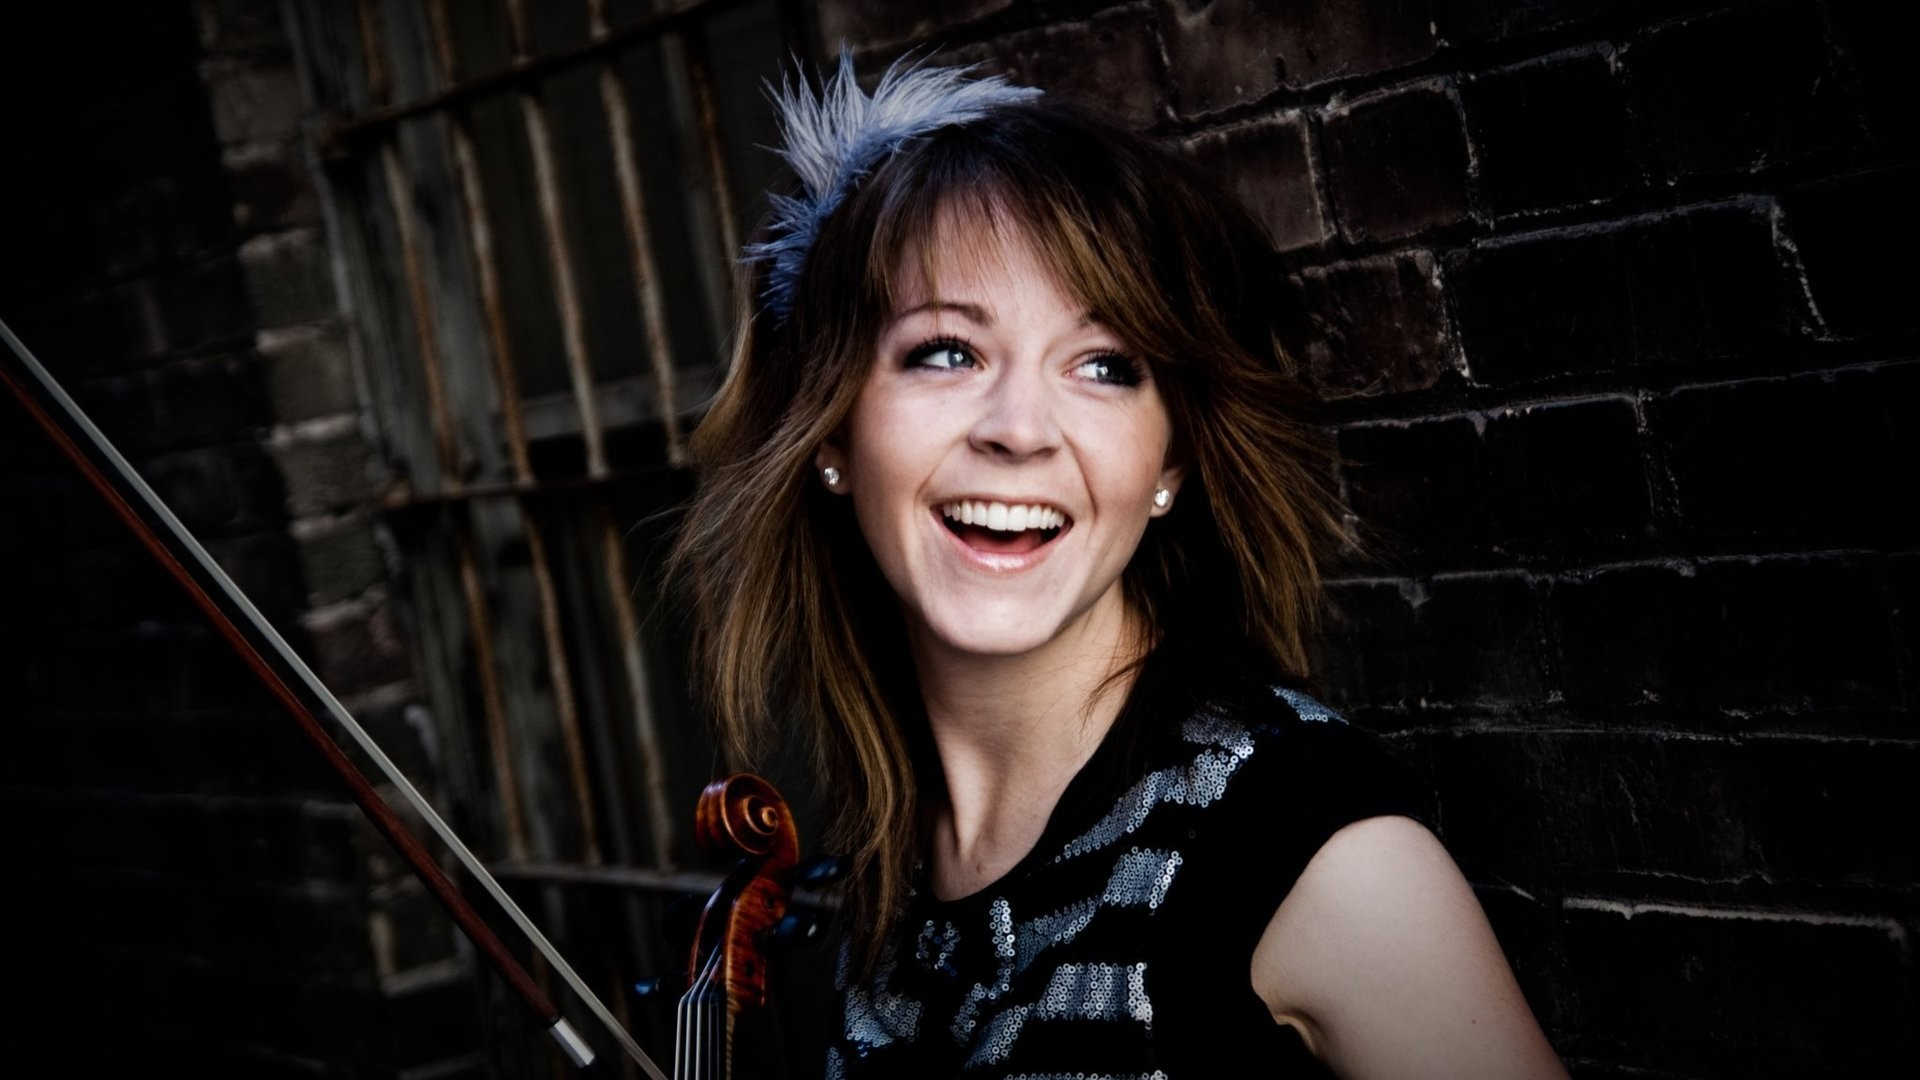 lindsey stirling beyond the veillindsey stirling скачать, lindsey stirling crystallize, lindsey stirling the arena, lindsey stirling слушать, lindsey stirling skyrim, lindsey stirling brave enough, lindsey stirling shadows, lindsey stirling crystallize скачать, lindsey stirling the arena скачать, lindsey stirling 2016, lindsey stirling hold my heart, lindsey stirling elements, lindsey stirling – roundtable rival, lindsey stirling фото, lindsey stirling вики, lindsey stirling dota 2, lindsey stirling radioactive, lindsey stirling скачать mp3, lindsey stirling take flight, lindsey stirling beyond the veil